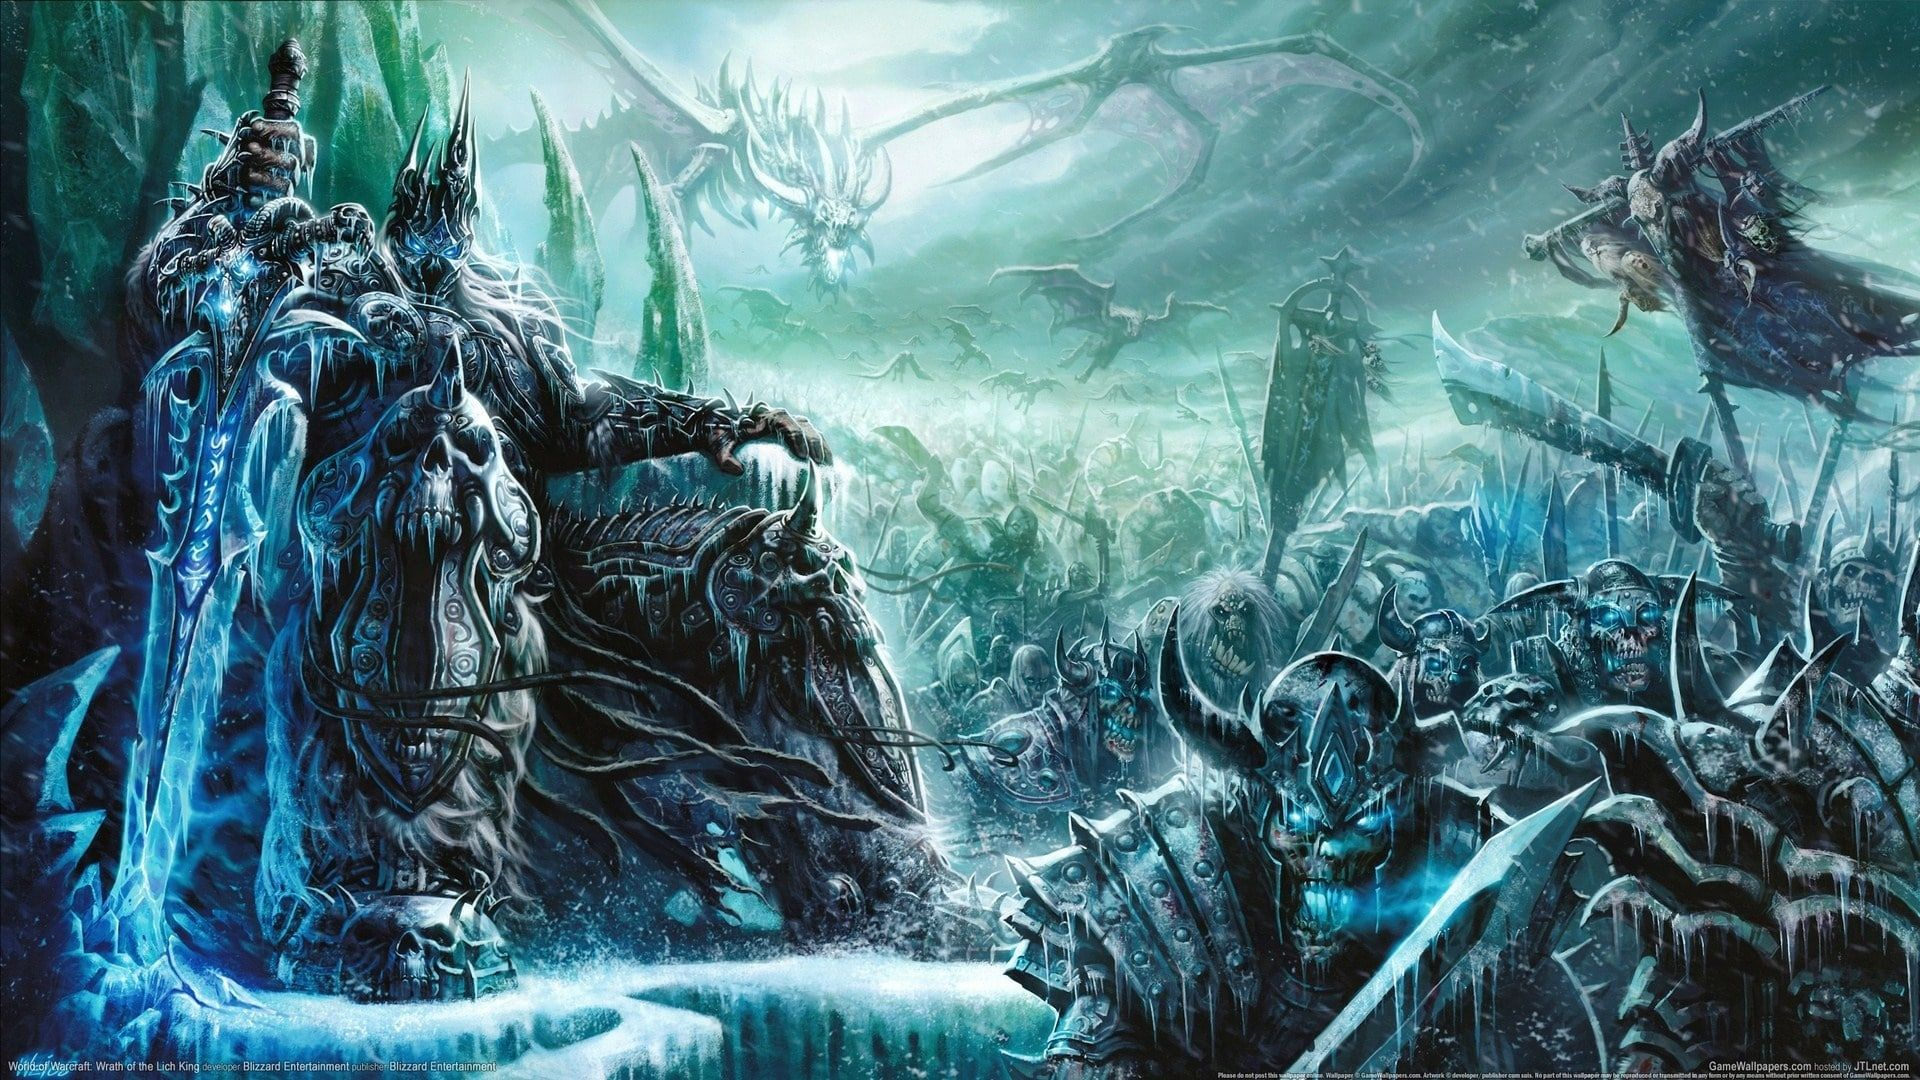 The Lich King Wallpaper In 2019 World Of Warcraft